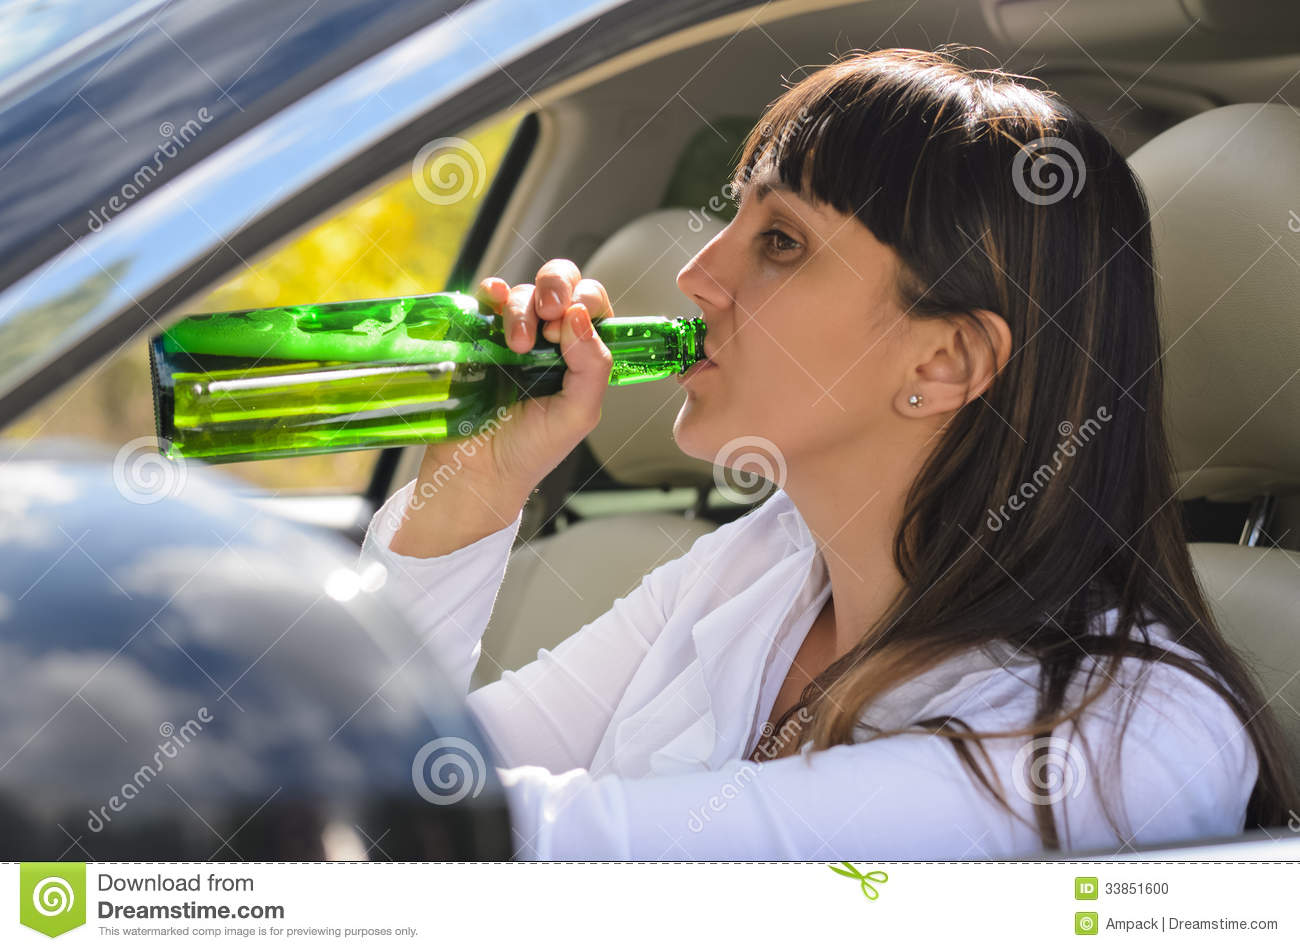 how to avoid drinking and driving